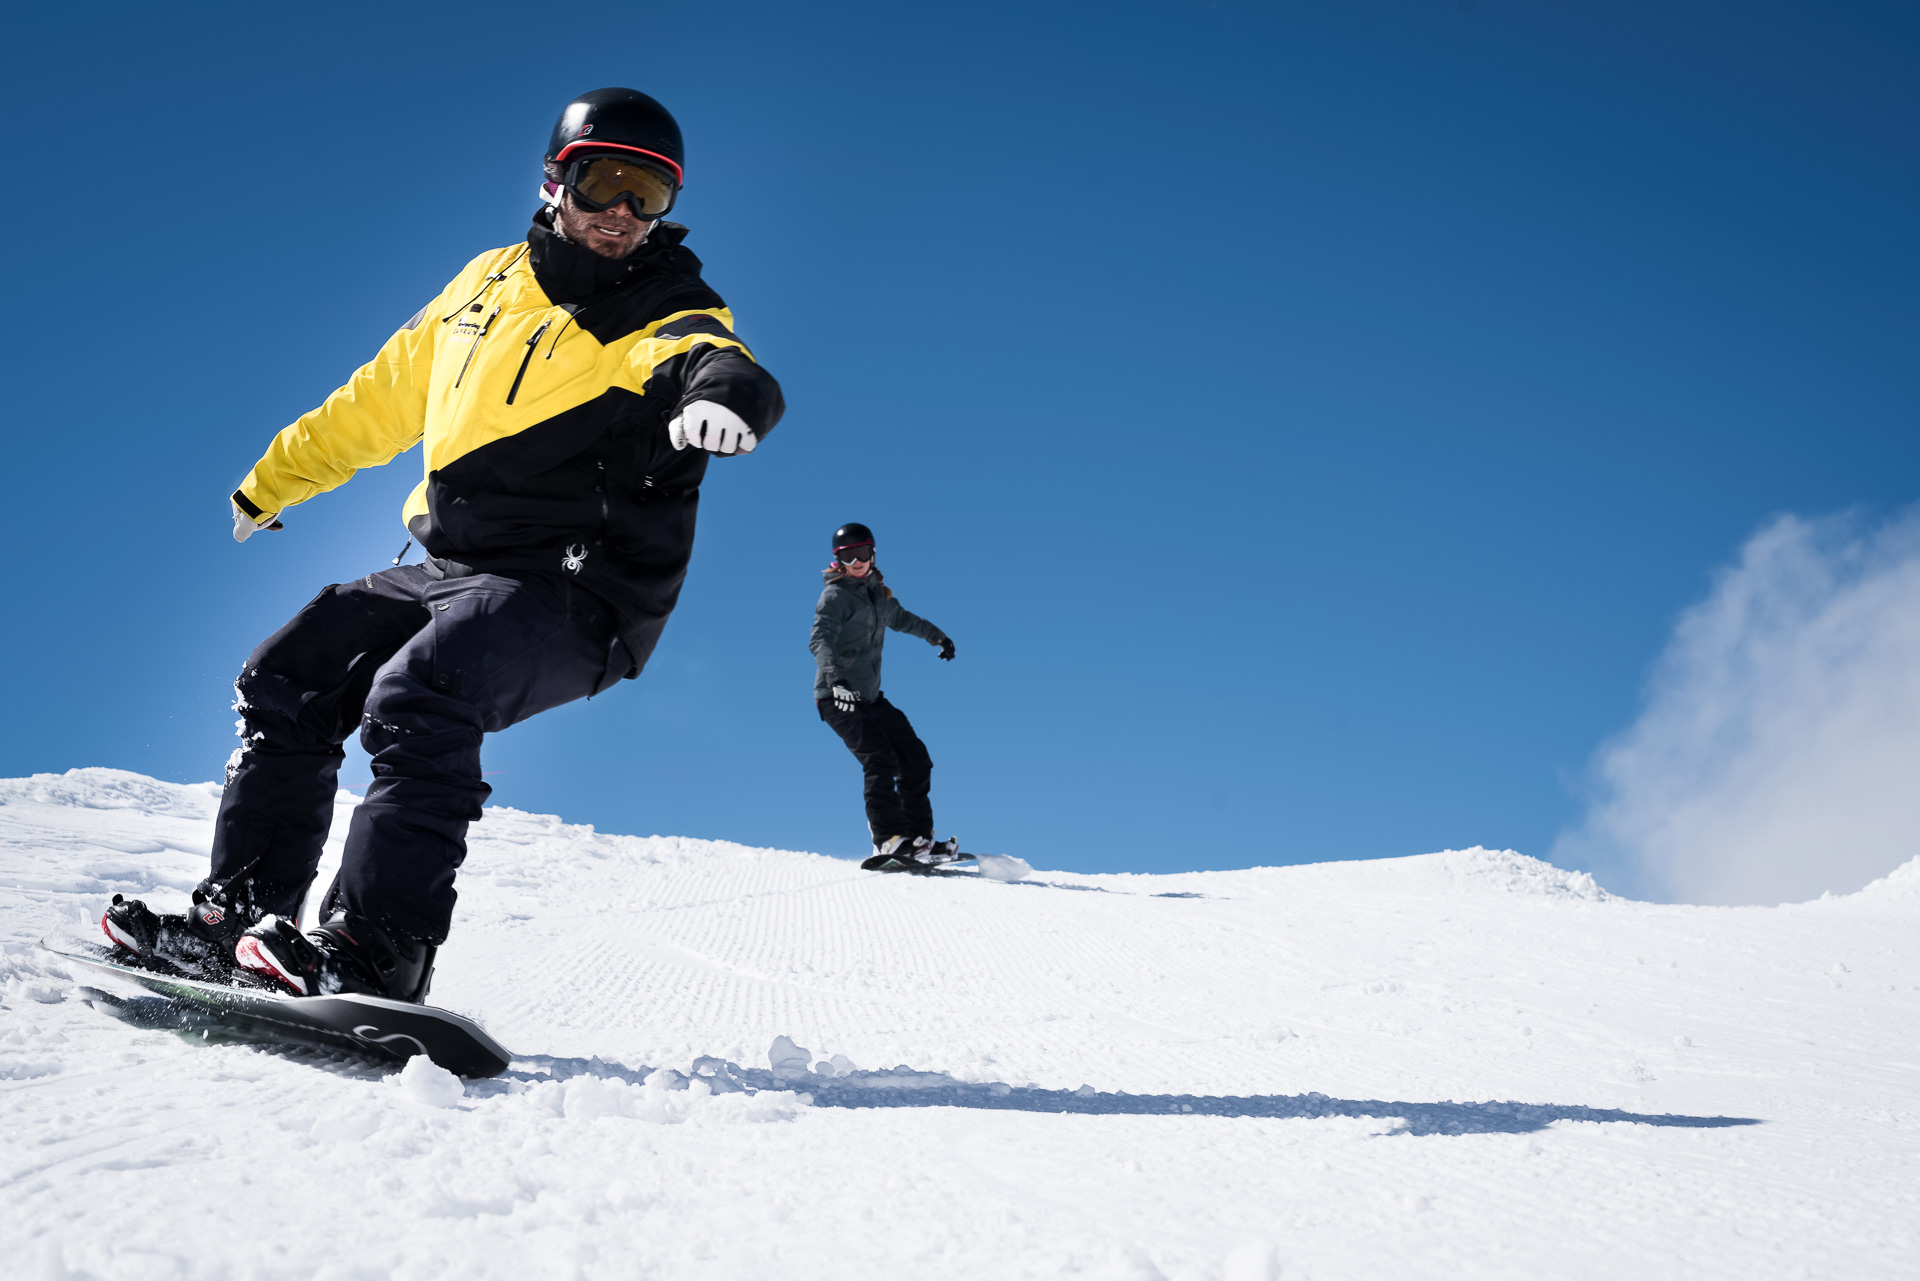 Privat - Snowboard, 1 Tag/Day, 4.5h